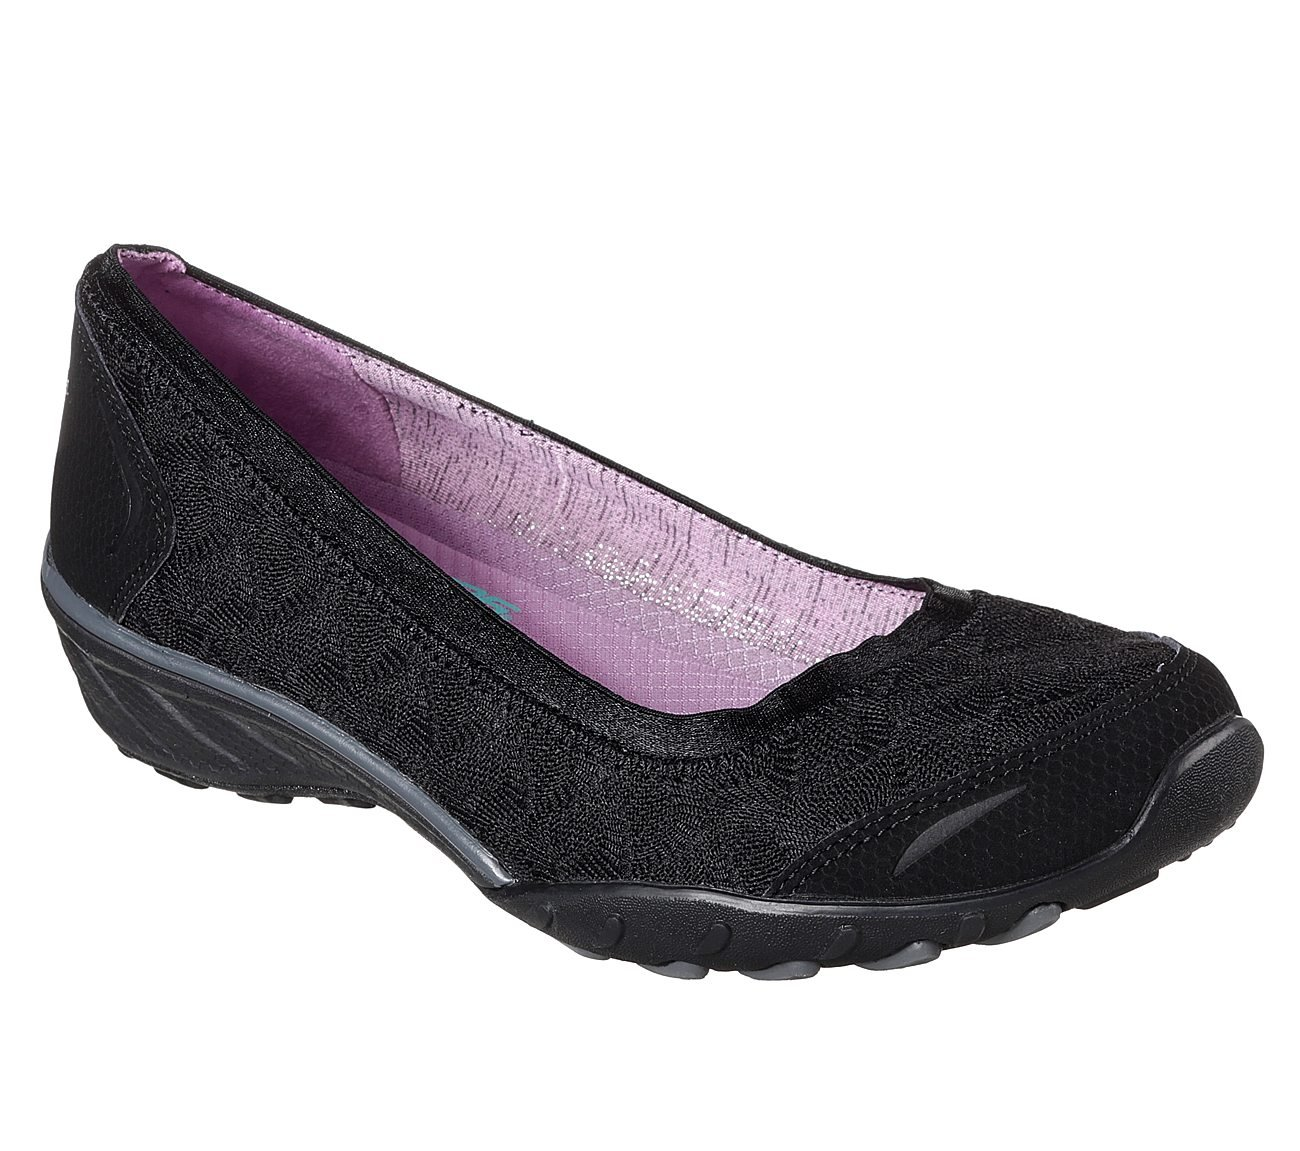 Skechers Womens Savvy - Pump Play The Game Wedge Pump - B074KJN2RG 7 B(M) US|Black a795d0